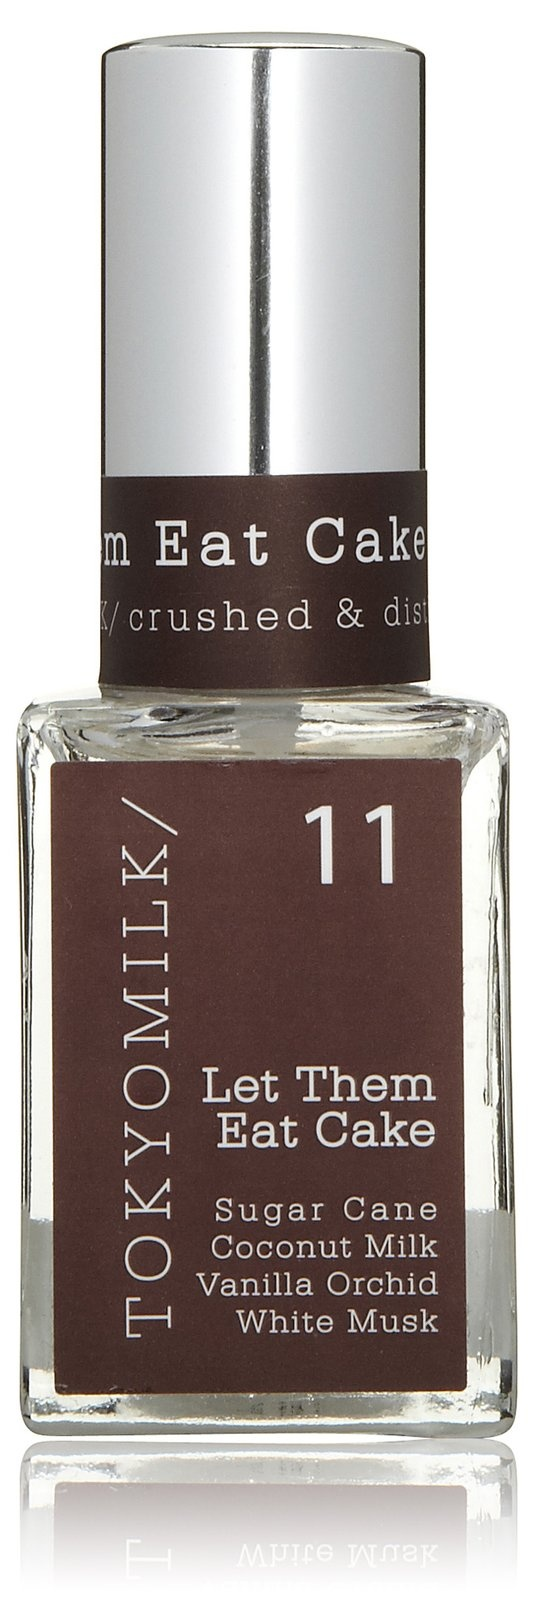 Tokyo Milk Let Them Eat Cake No. 11 Parfum One of my favoites...when I start to get low, I immediately order another one!